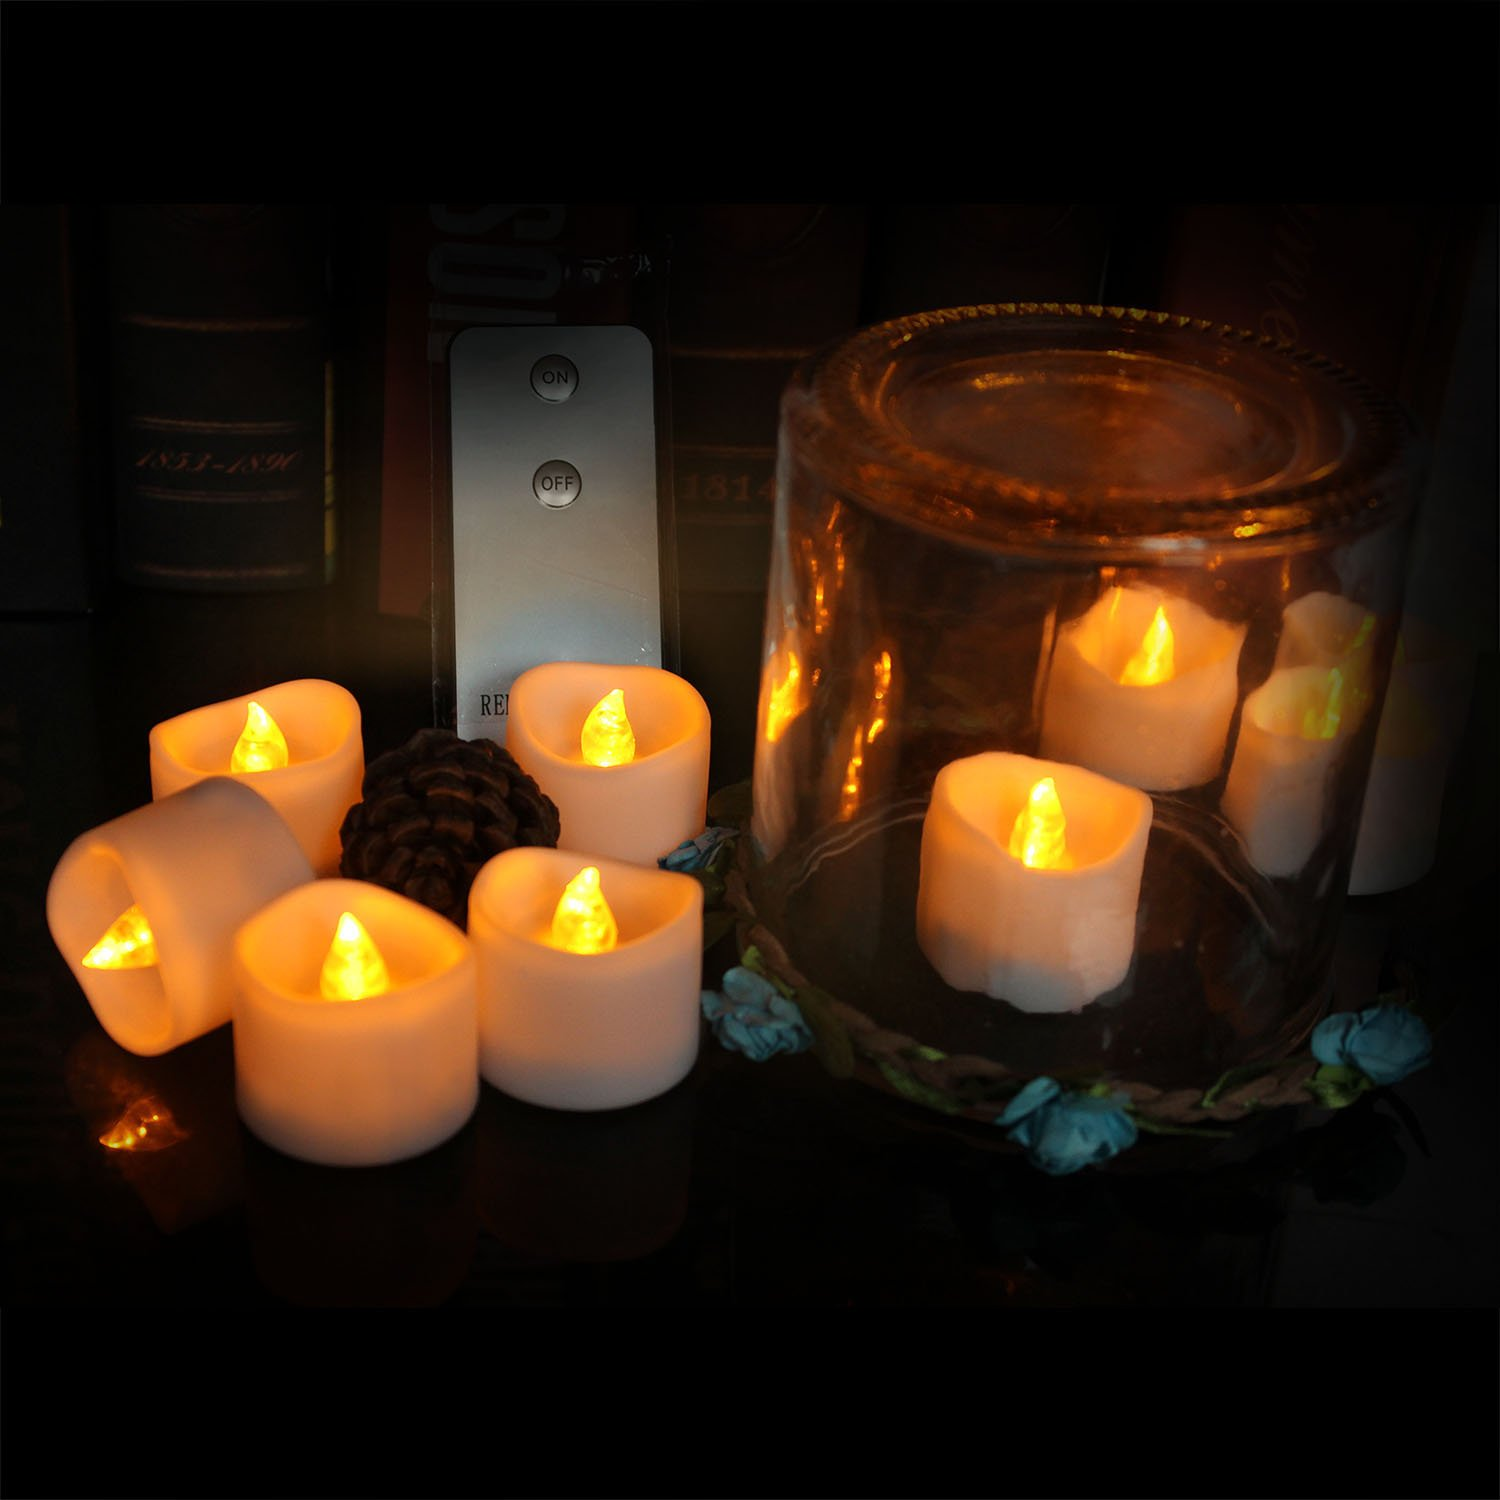 Led Tealight Candles Wavy Flameless Realistic Battery-Powered Waterproof Candles with Remote 24pack for Wedding, Party, Home Decoration, Outdoor (Yellow + Remoto Control)